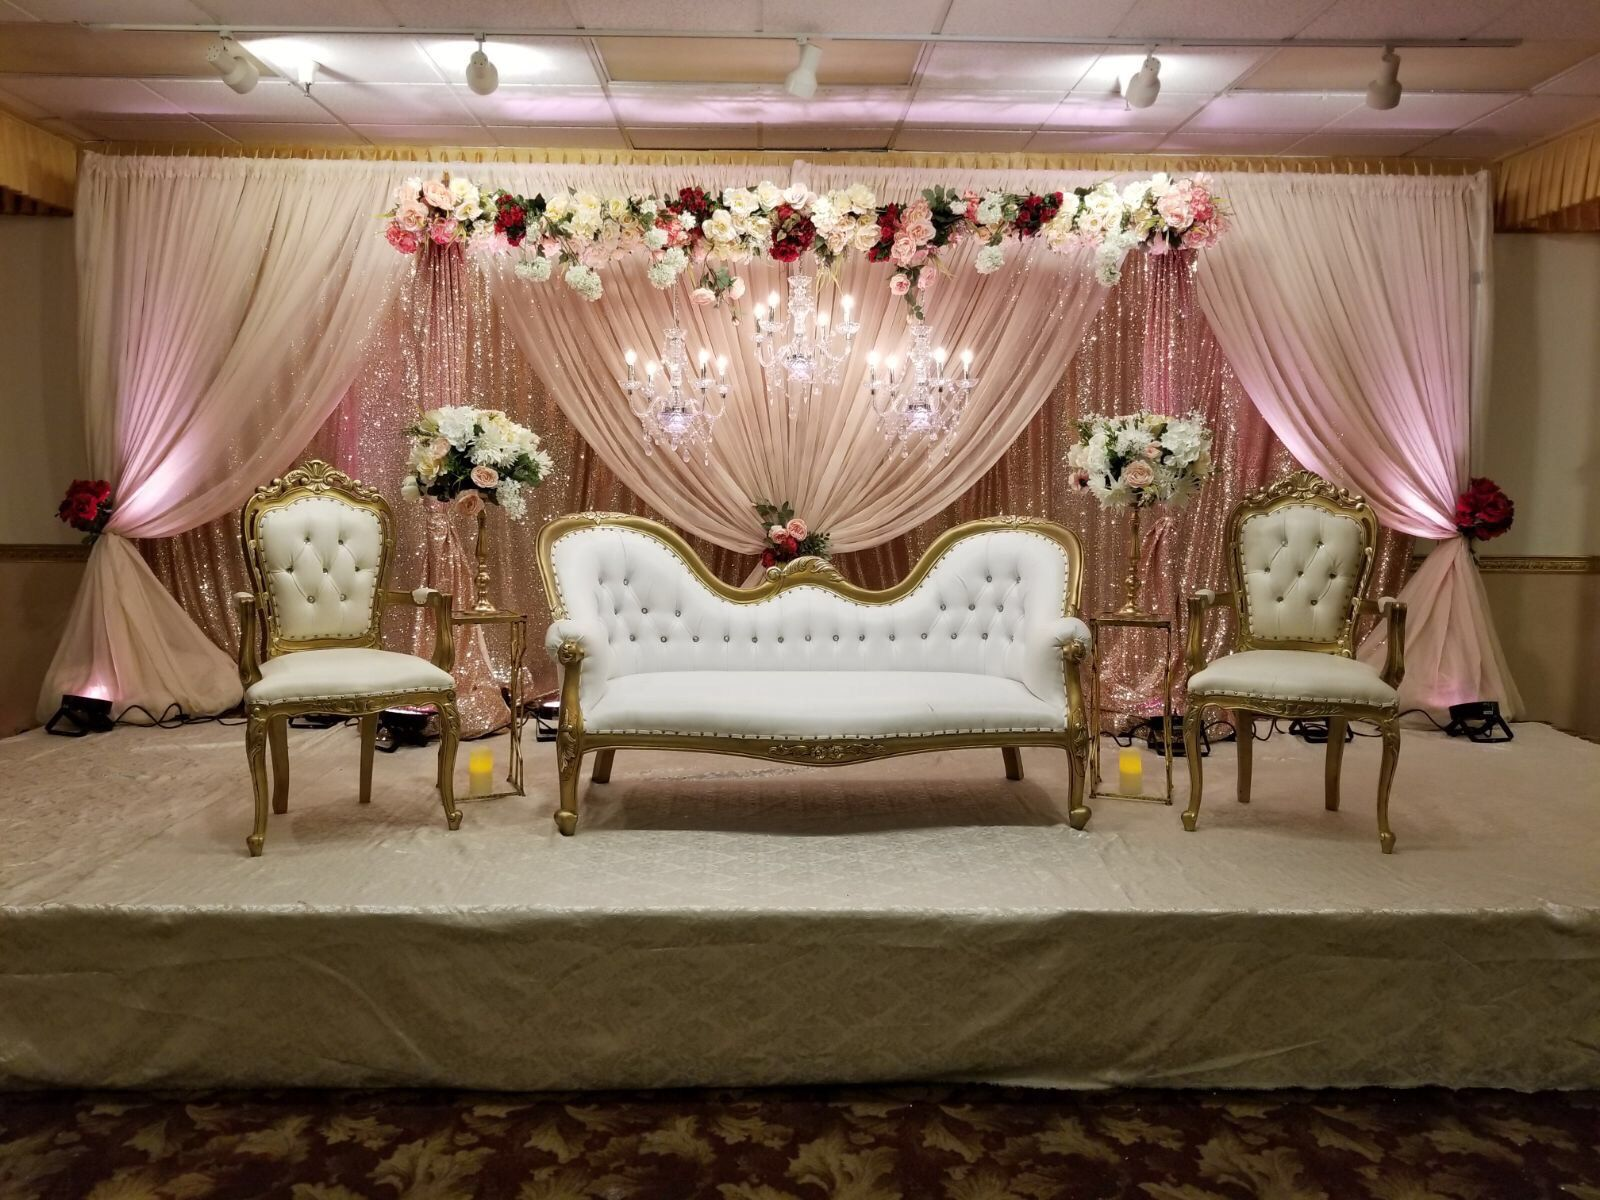 Wedding And Reception Event Decorations Indian Inspired Decorations At Chandini In Newark Ca Luxury Wedding Decor Nikah Decor Hindu Wedding Decorations